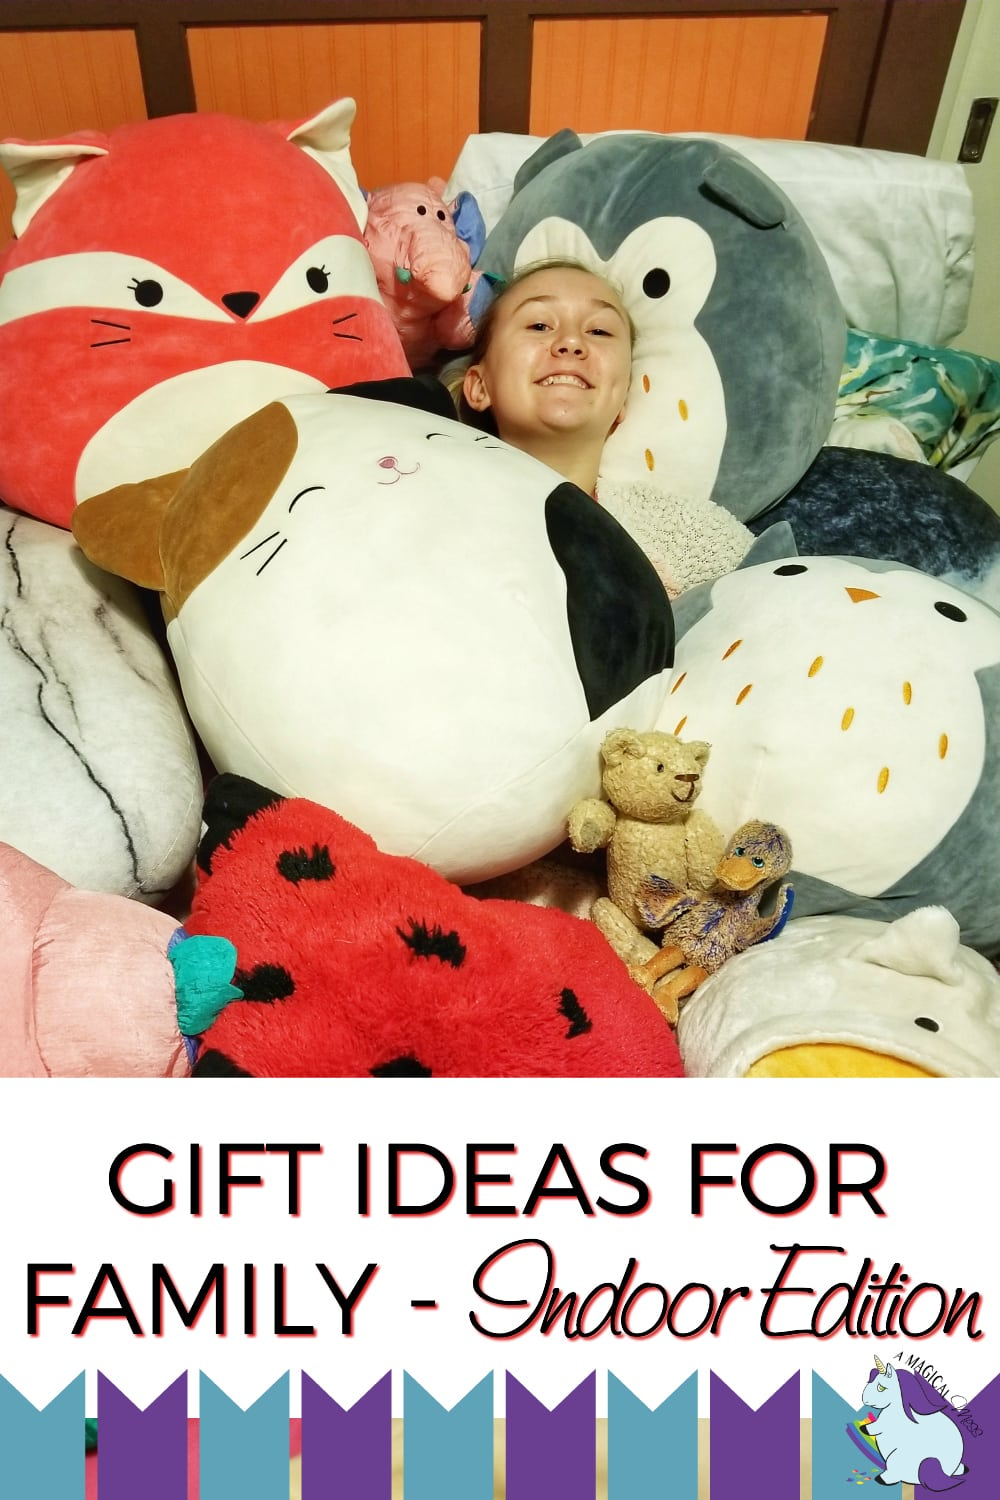 Gift Ideas for Family Fun with Kids - Indoor Edition #GiftGuide #GiftIdeas